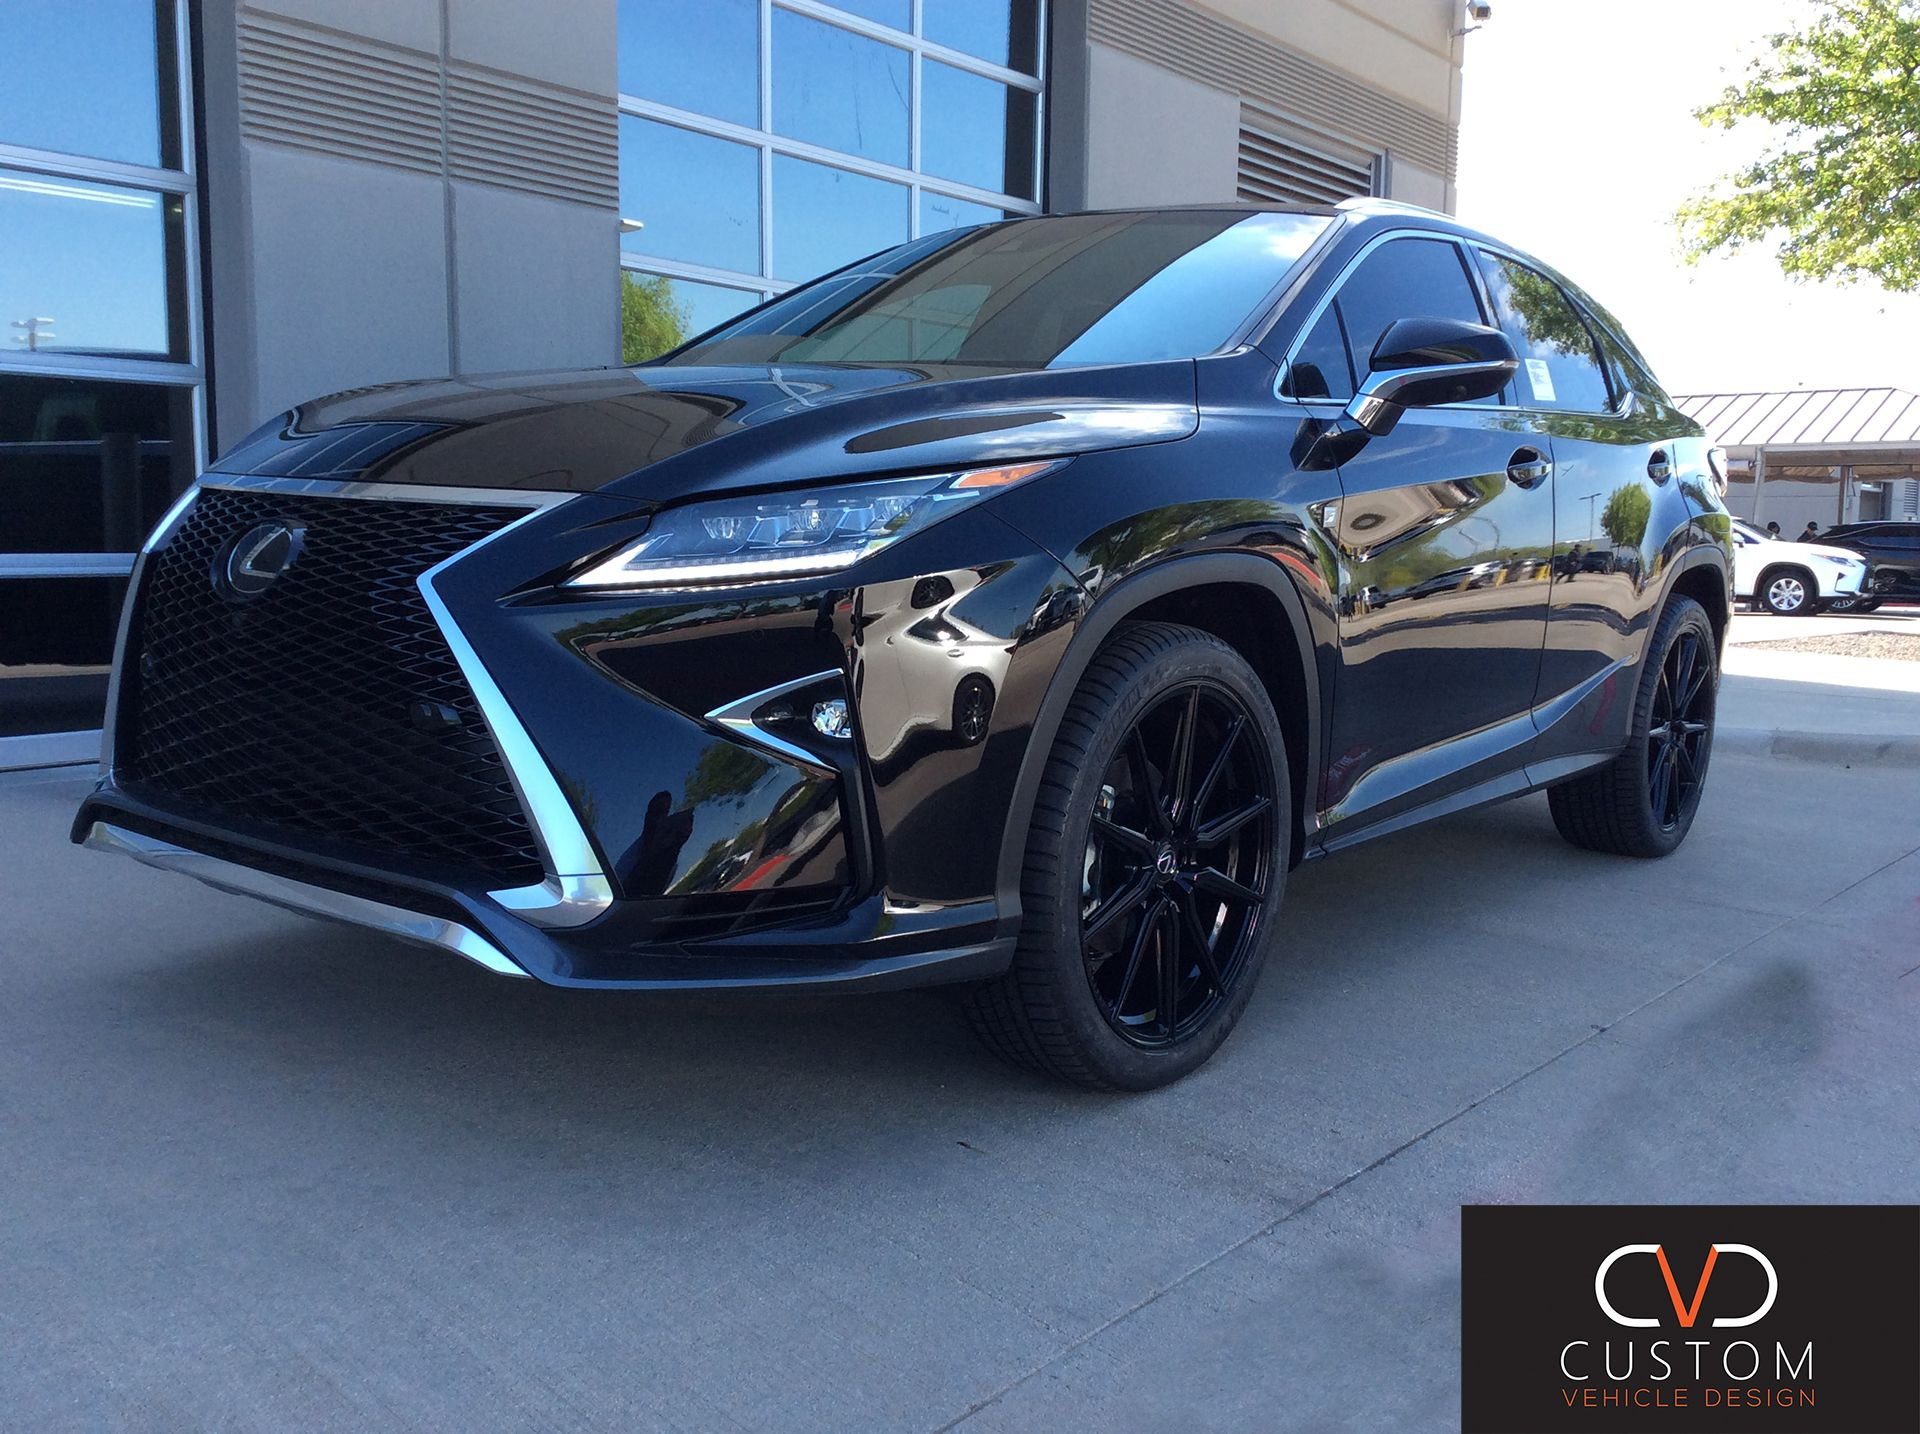 2019 Lexus Rx350 With Vossen 22 Hf 3 Double Tinted Gloss Black Wheels 2019 Cvdauto Lexus Rx Lexus Rx 350 Lexus Sport Lexus Cars